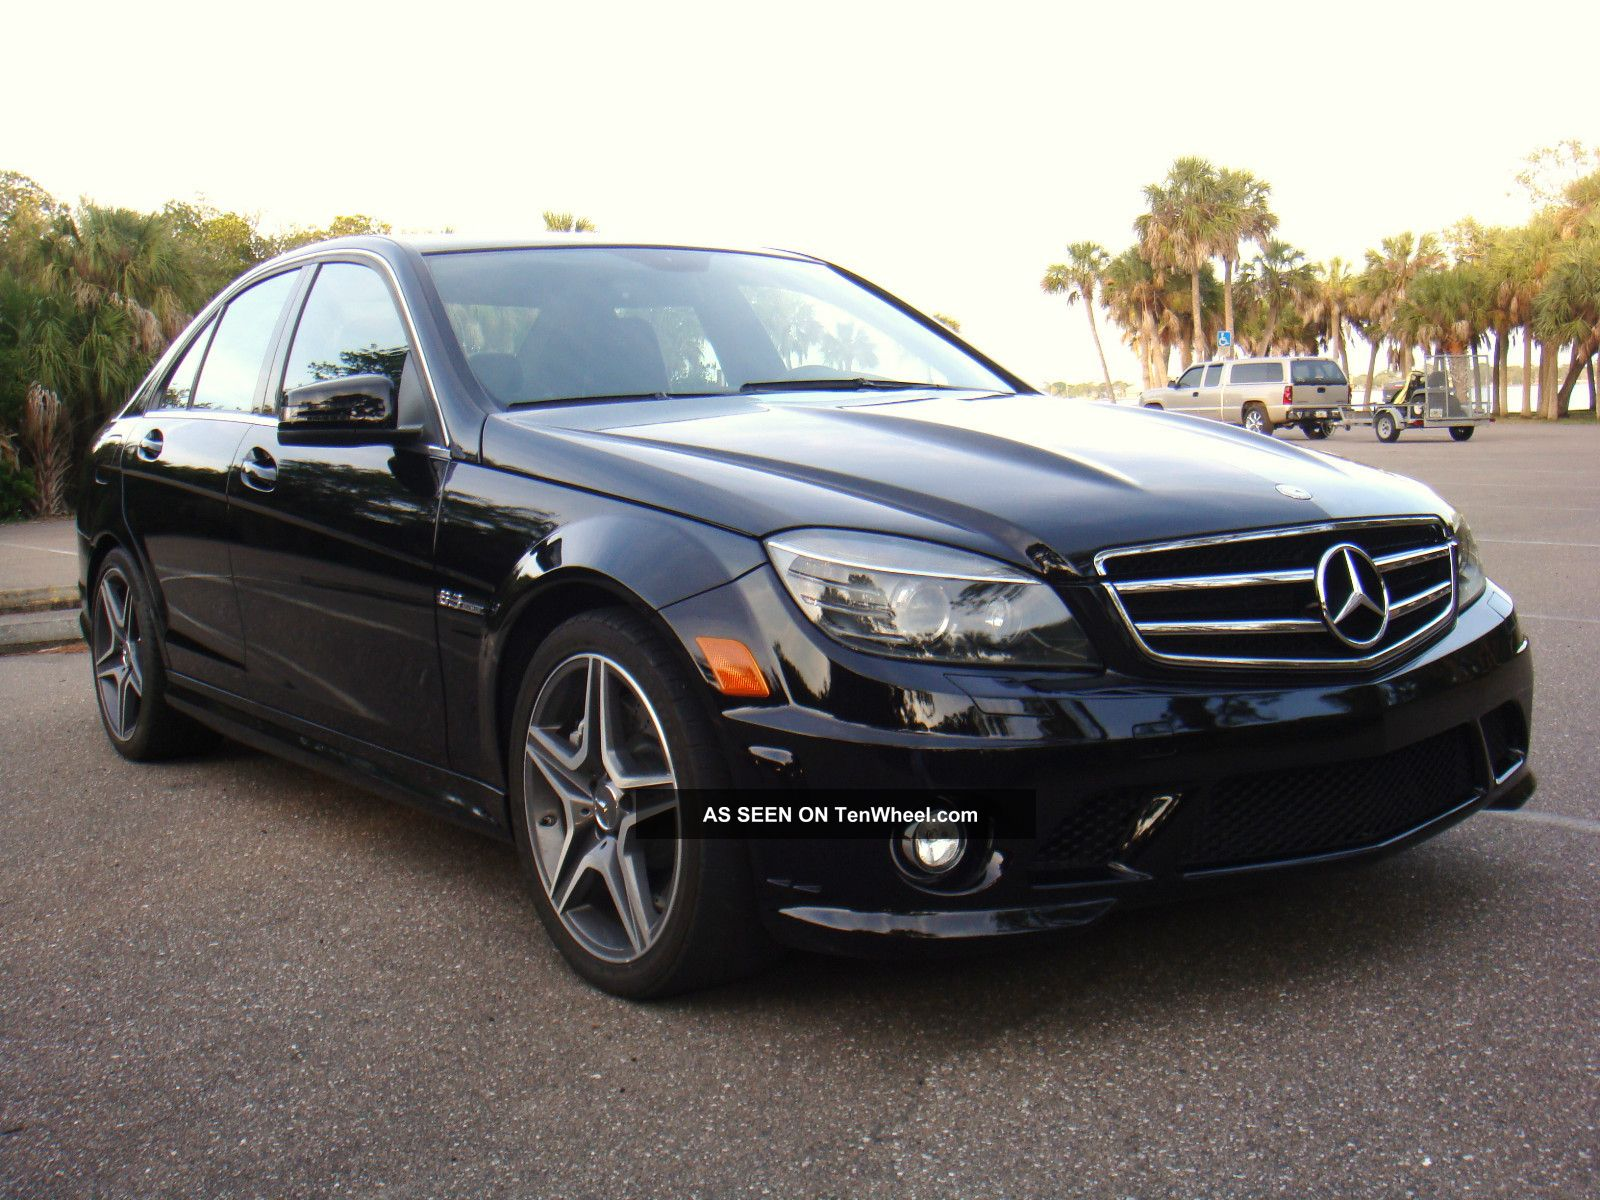 2010 mercedes benz c63 amg sport sedan 4 door 6 3l for Mercedes benz c63 amg 2010